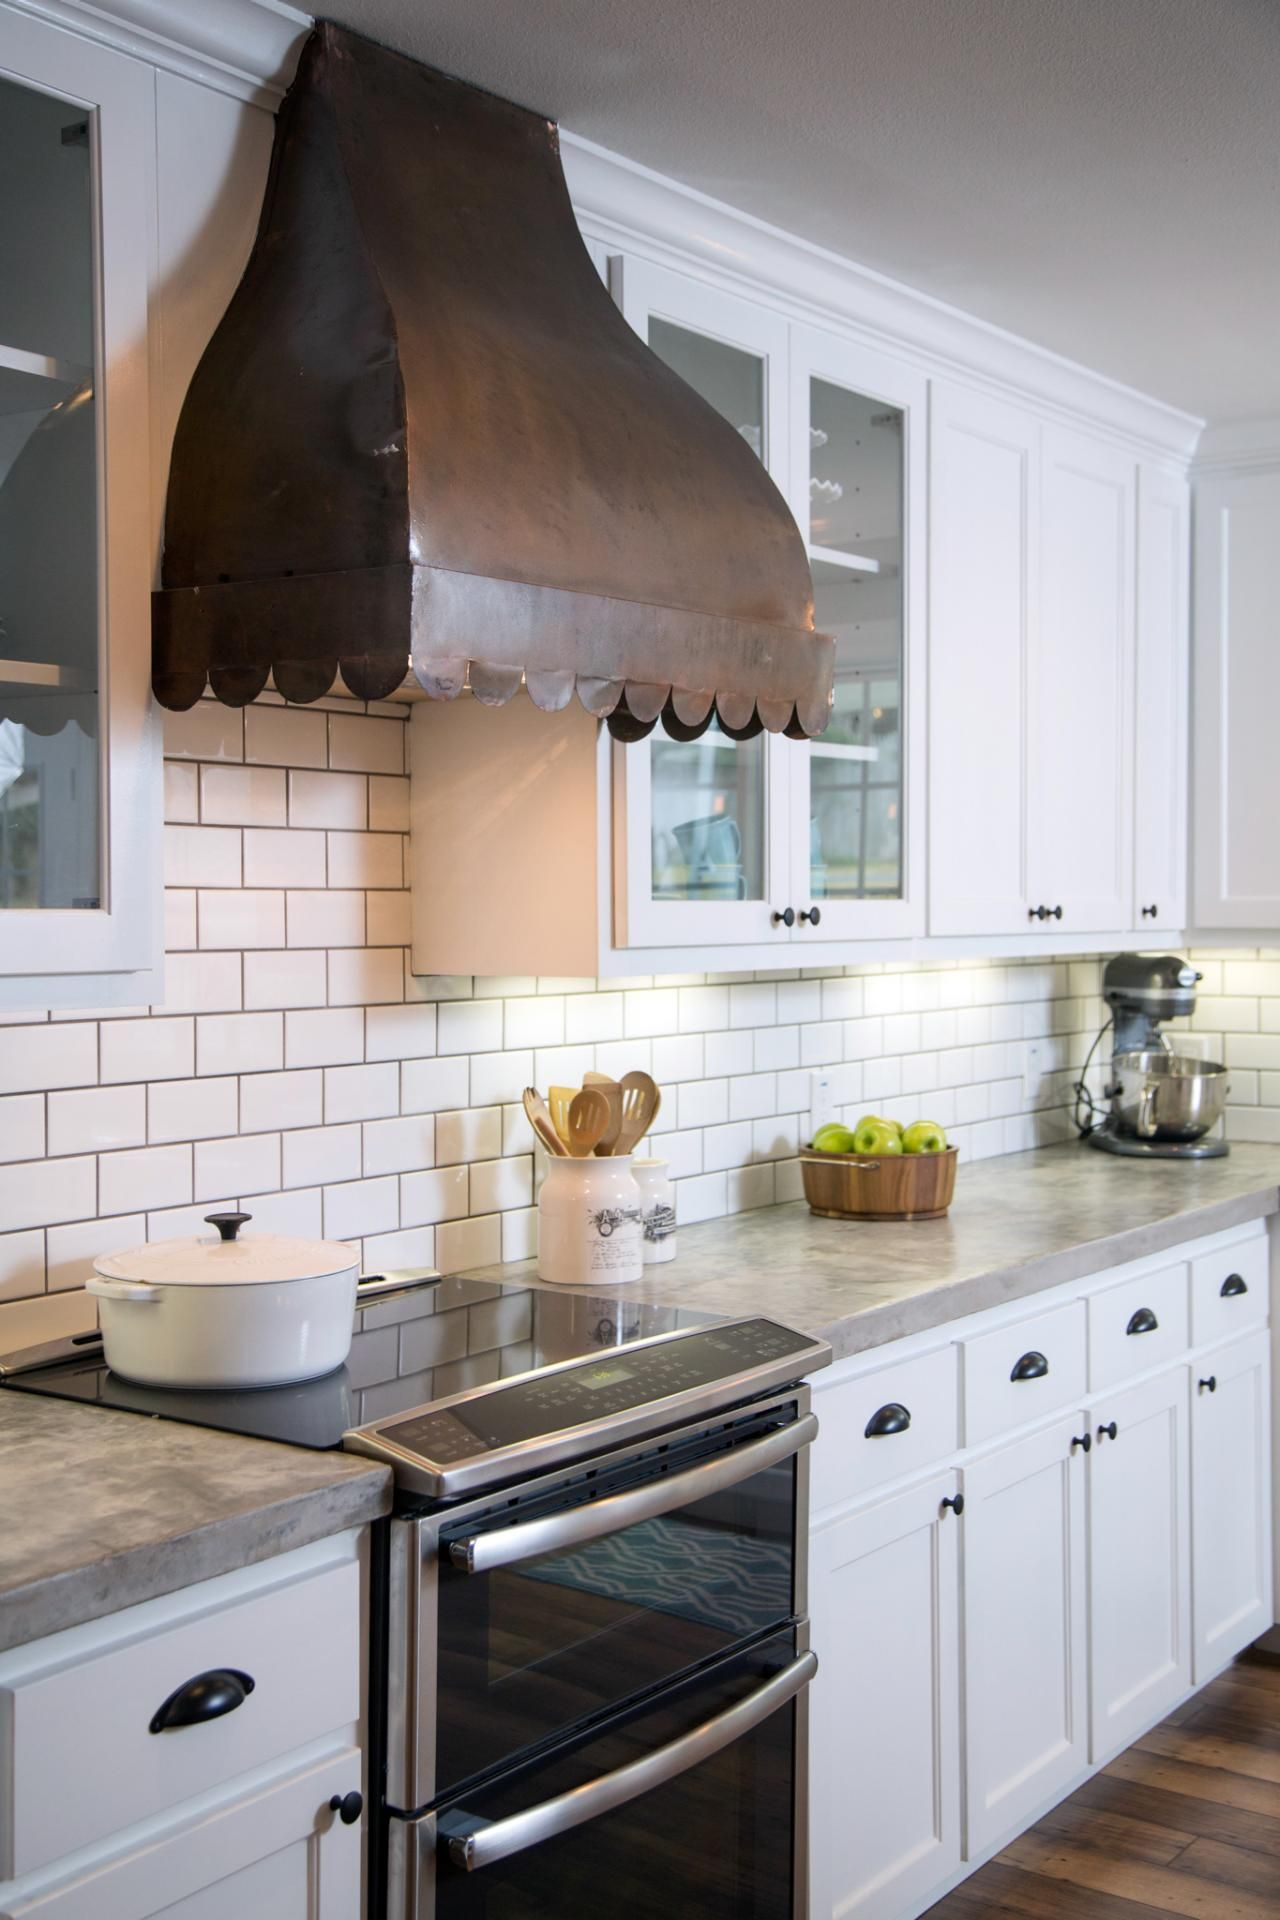 Fixer upper modern kitchen - 17 Best Images About Fixer Upper On Pinterest Kitchens Magnolia Farms And Flea Market Finds